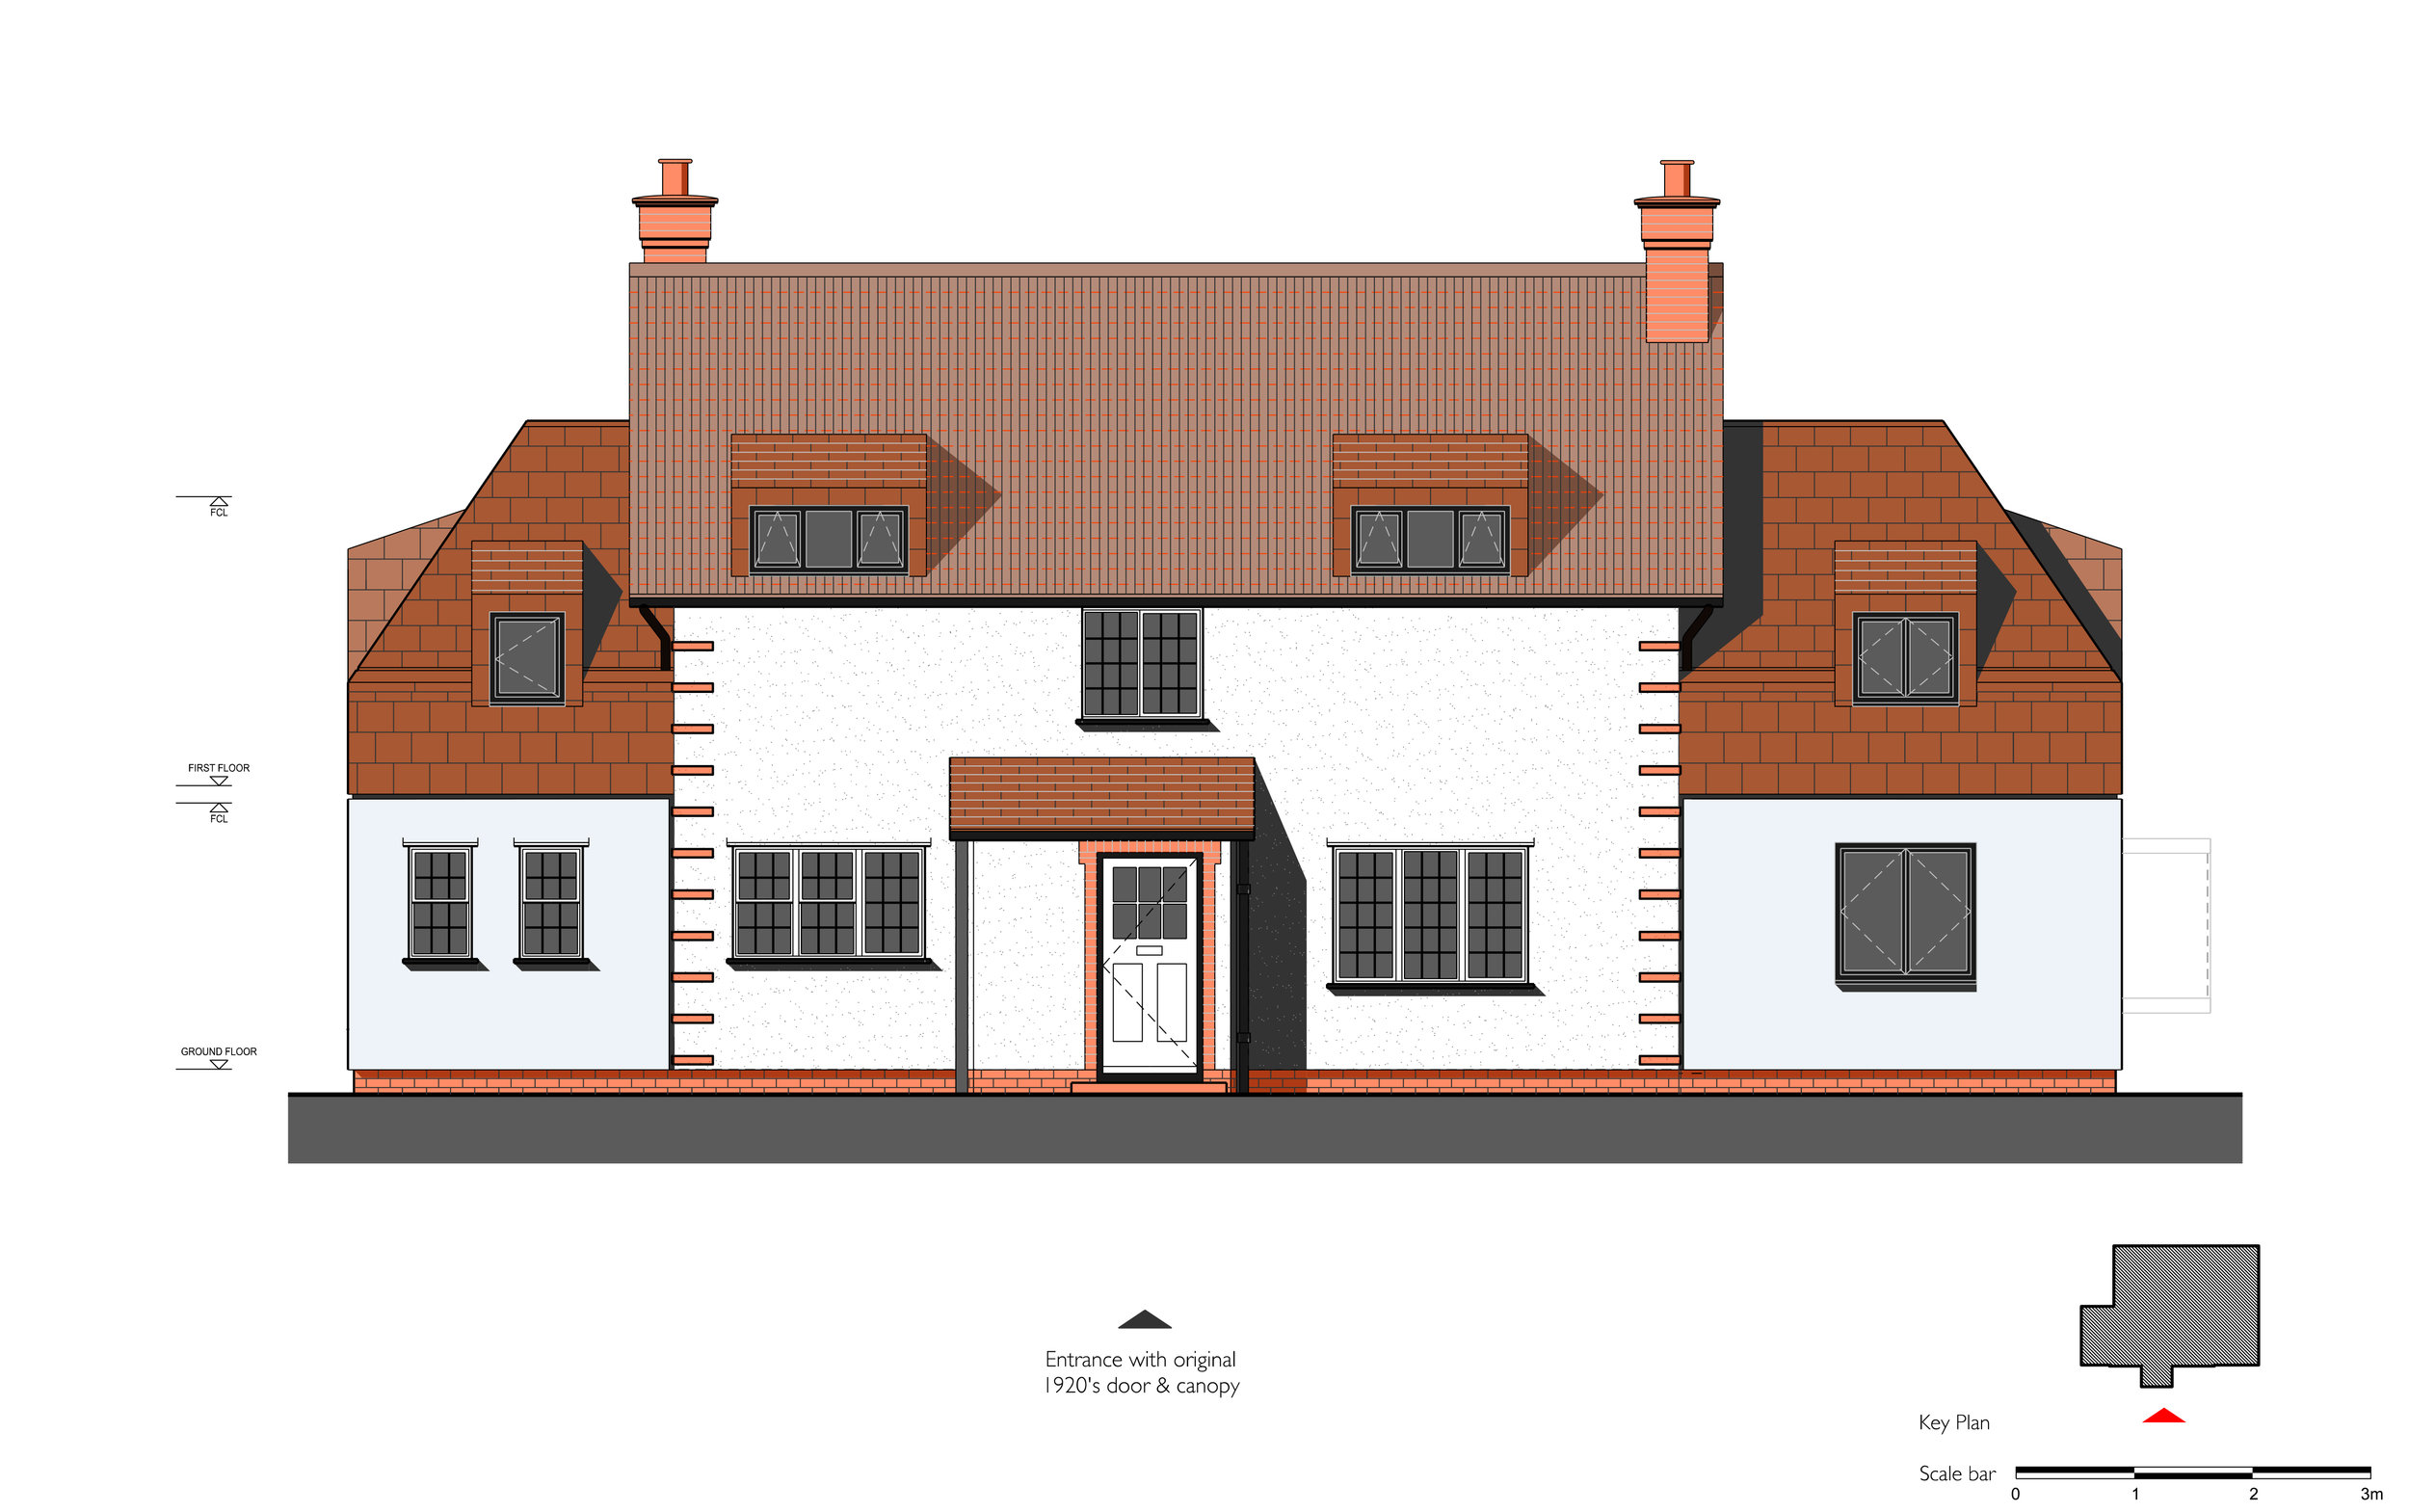 013_P_proposed north west front elevation.jpg